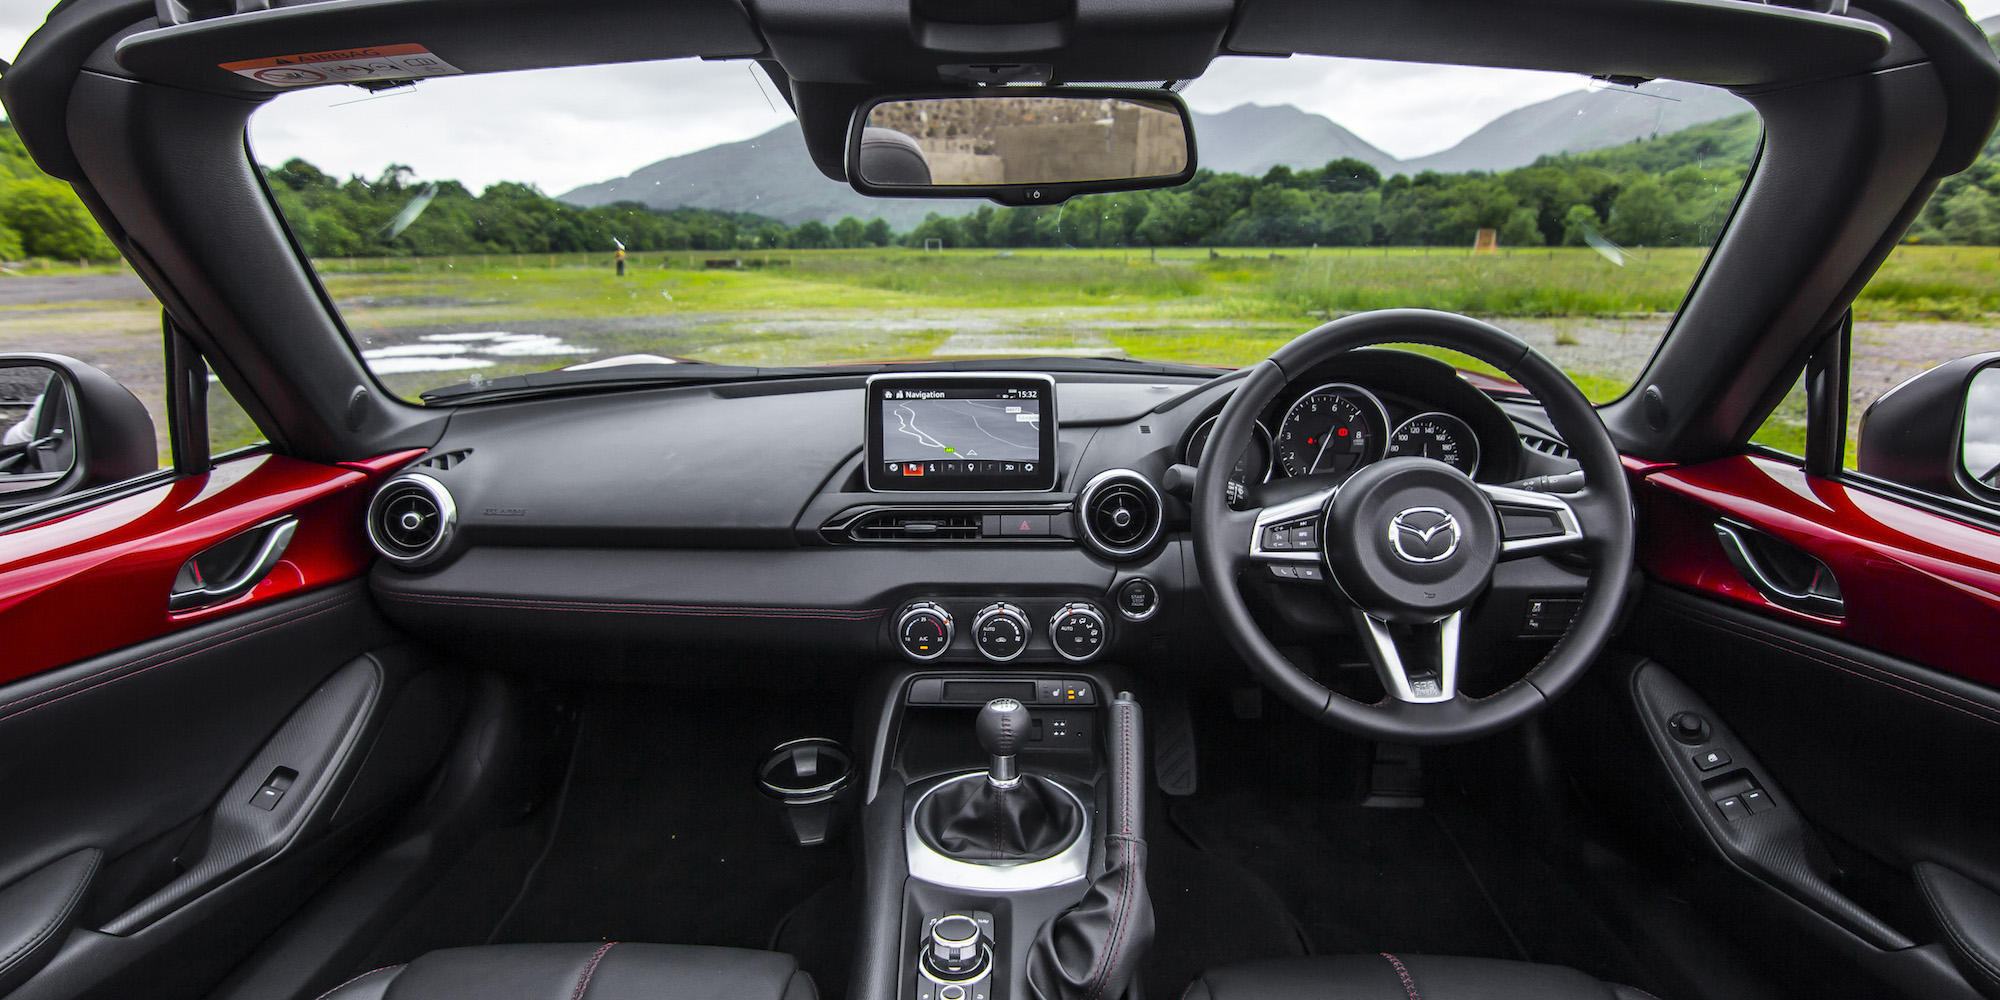 2016 Mazda Mx 5 Dashboard And Cockpit Interior (Photo 17 of 31)